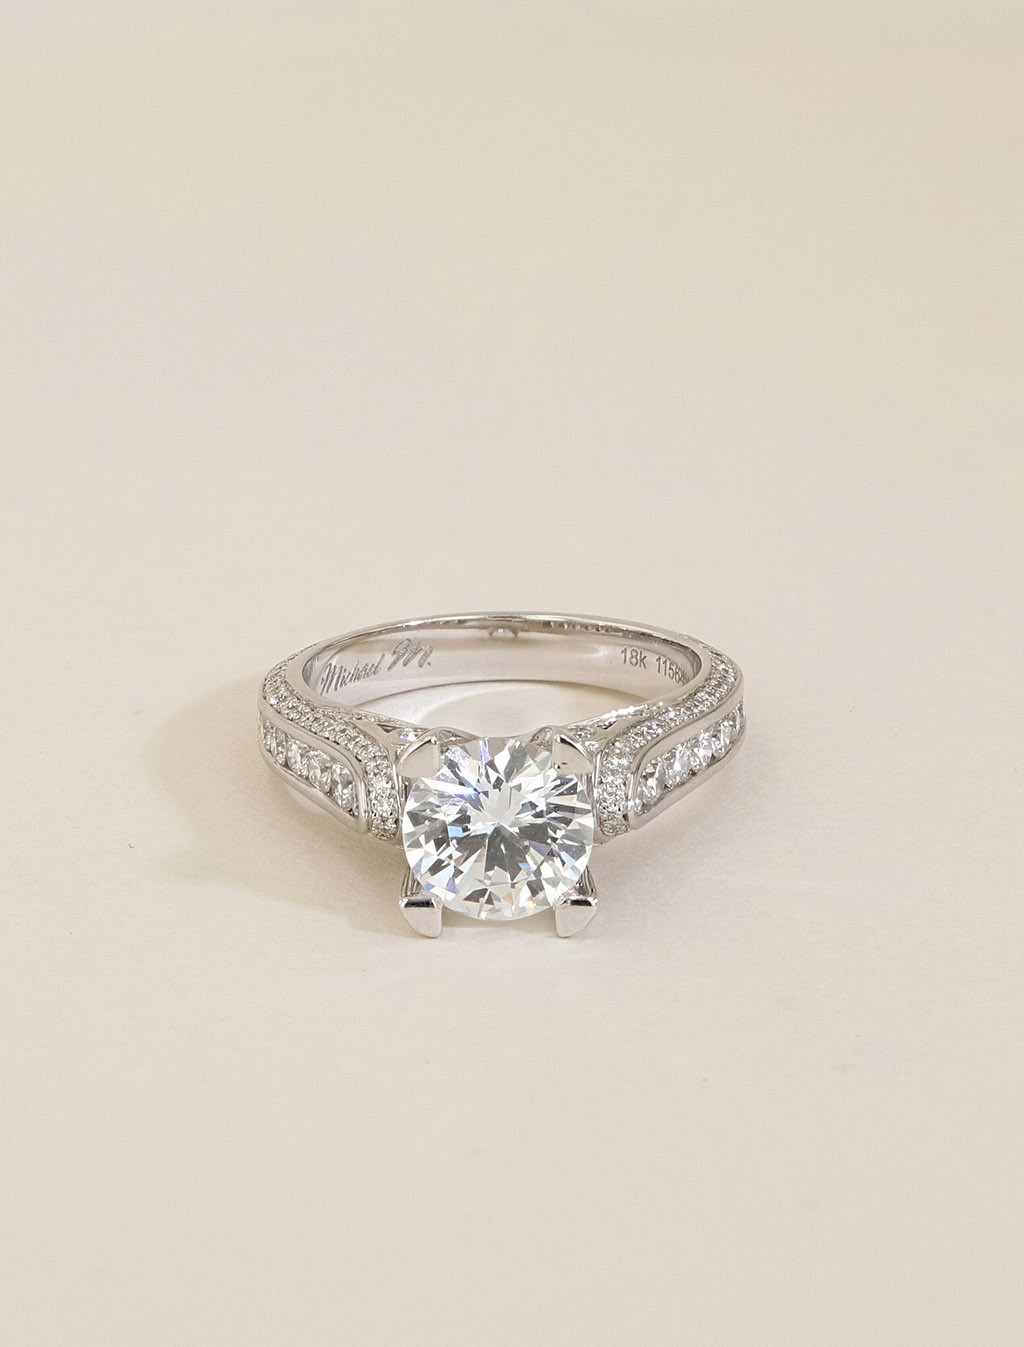 Michael M 18K Gold Round Channel Diamond Engagement Ring Setting front view